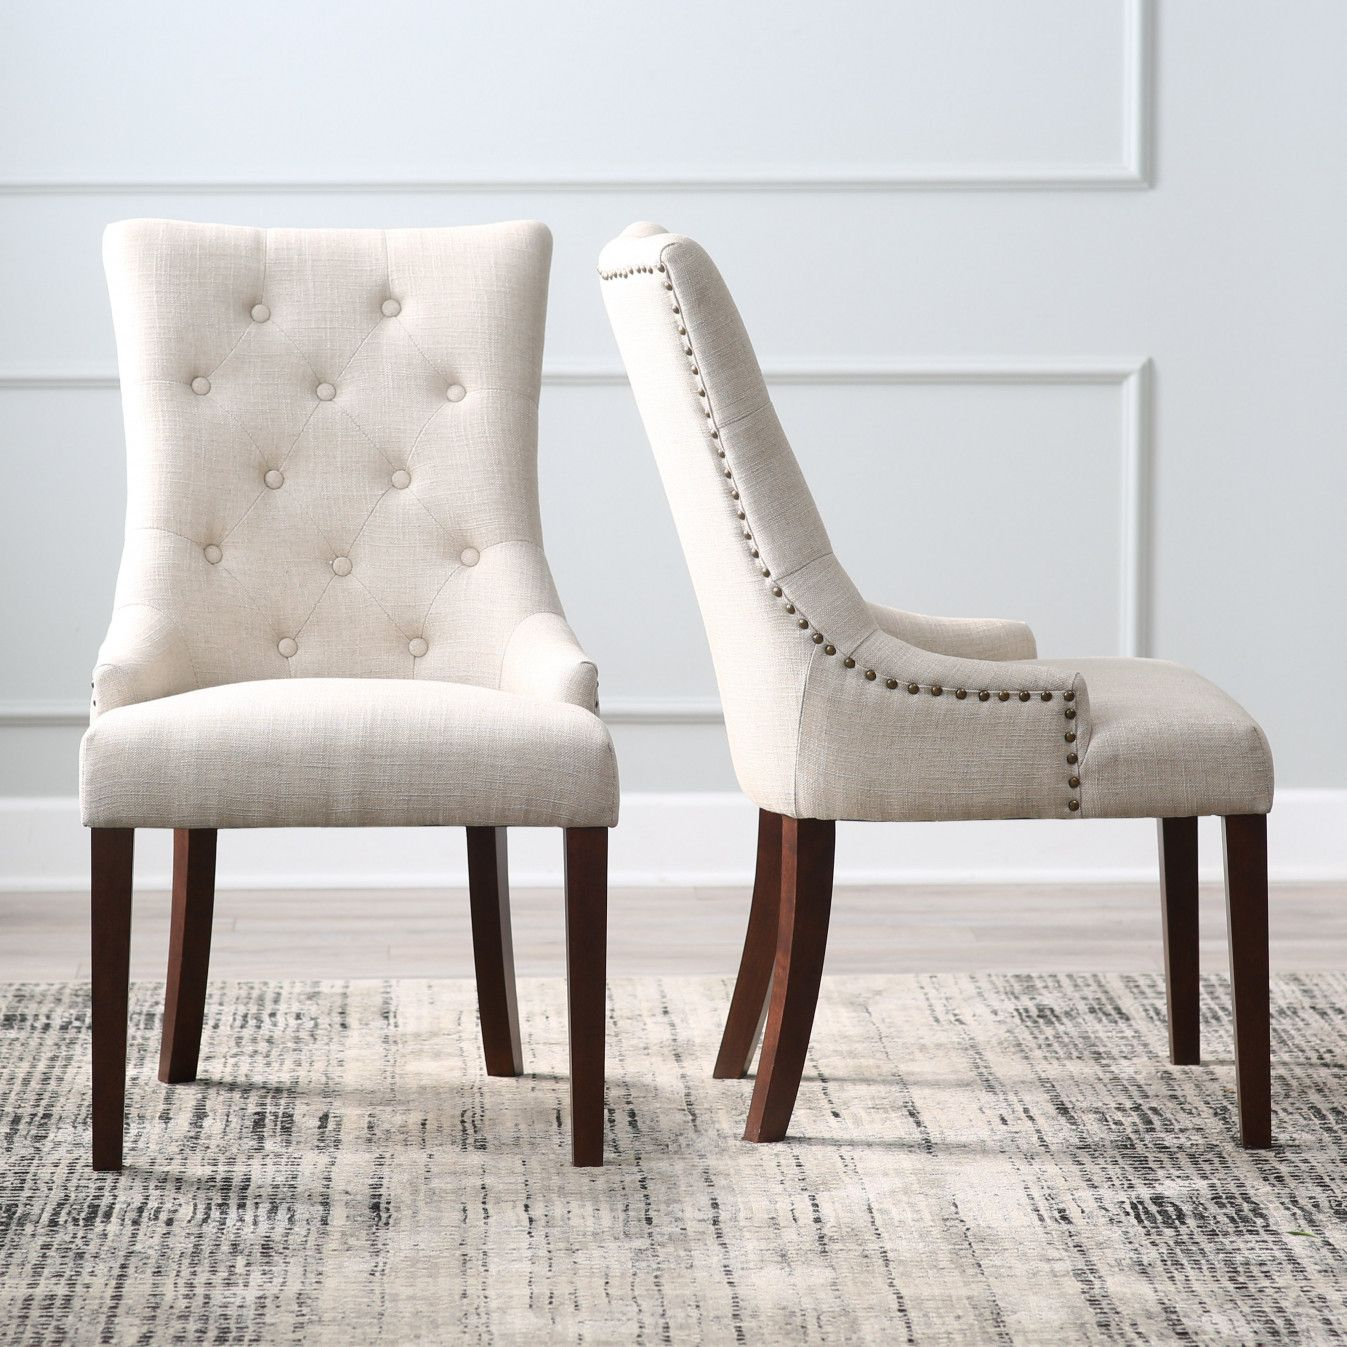 2019 white tufted dining chairs modern design furniture check more at http www ezeebreathe com white tufted dining chairs